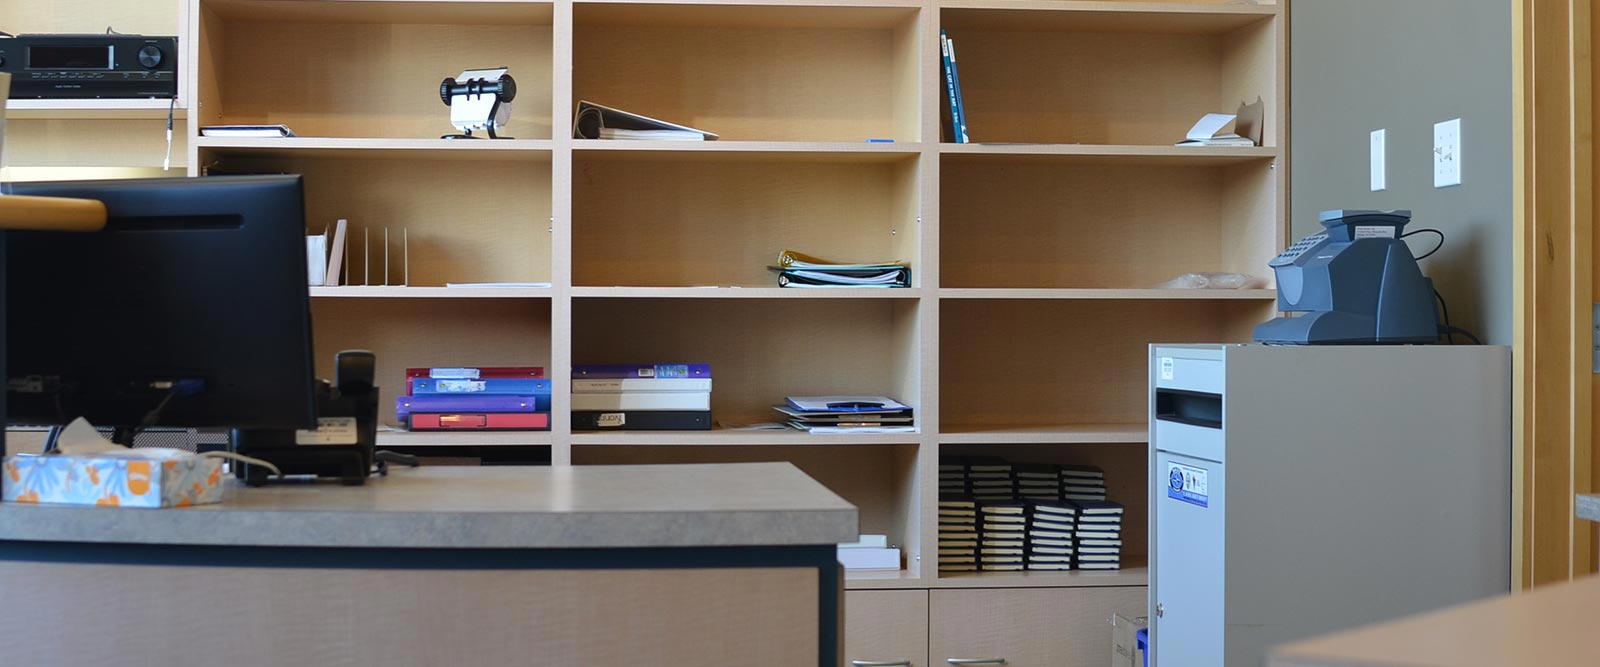 interior part of office image2